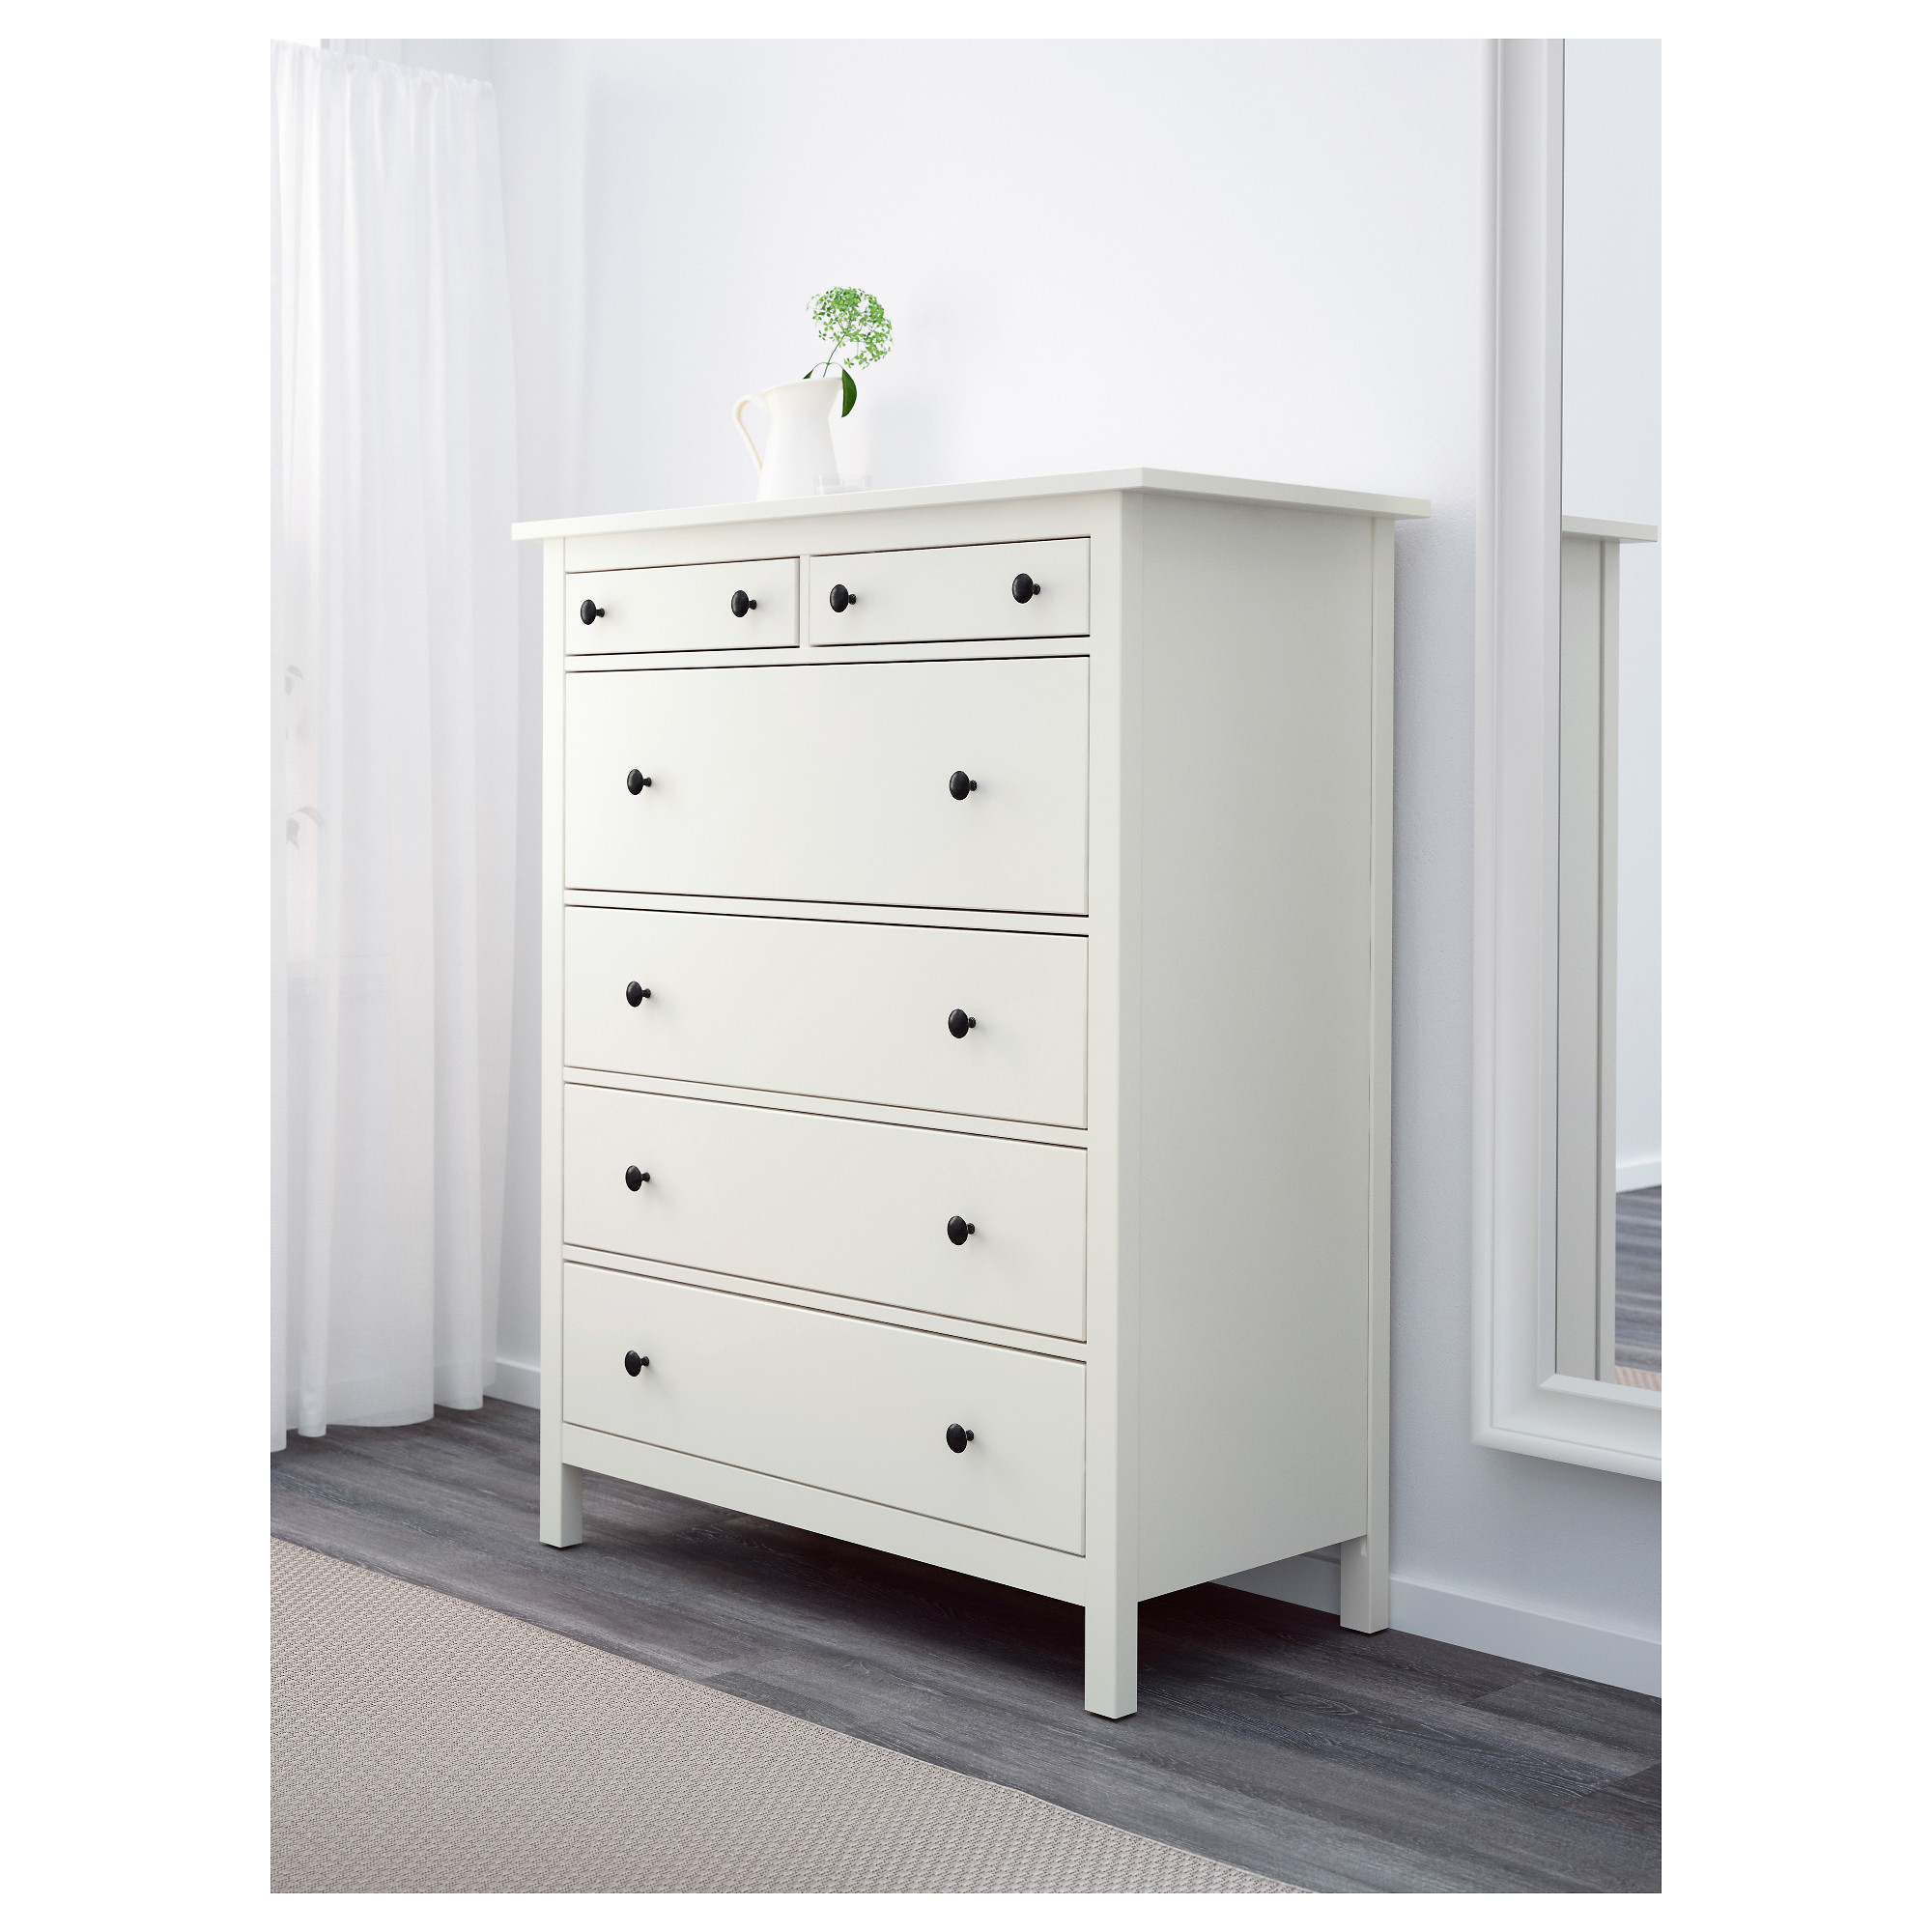 Ikea bedroom furniture chest of drawers - Ikea Bedroom Furniture Chest Of Drawers 38